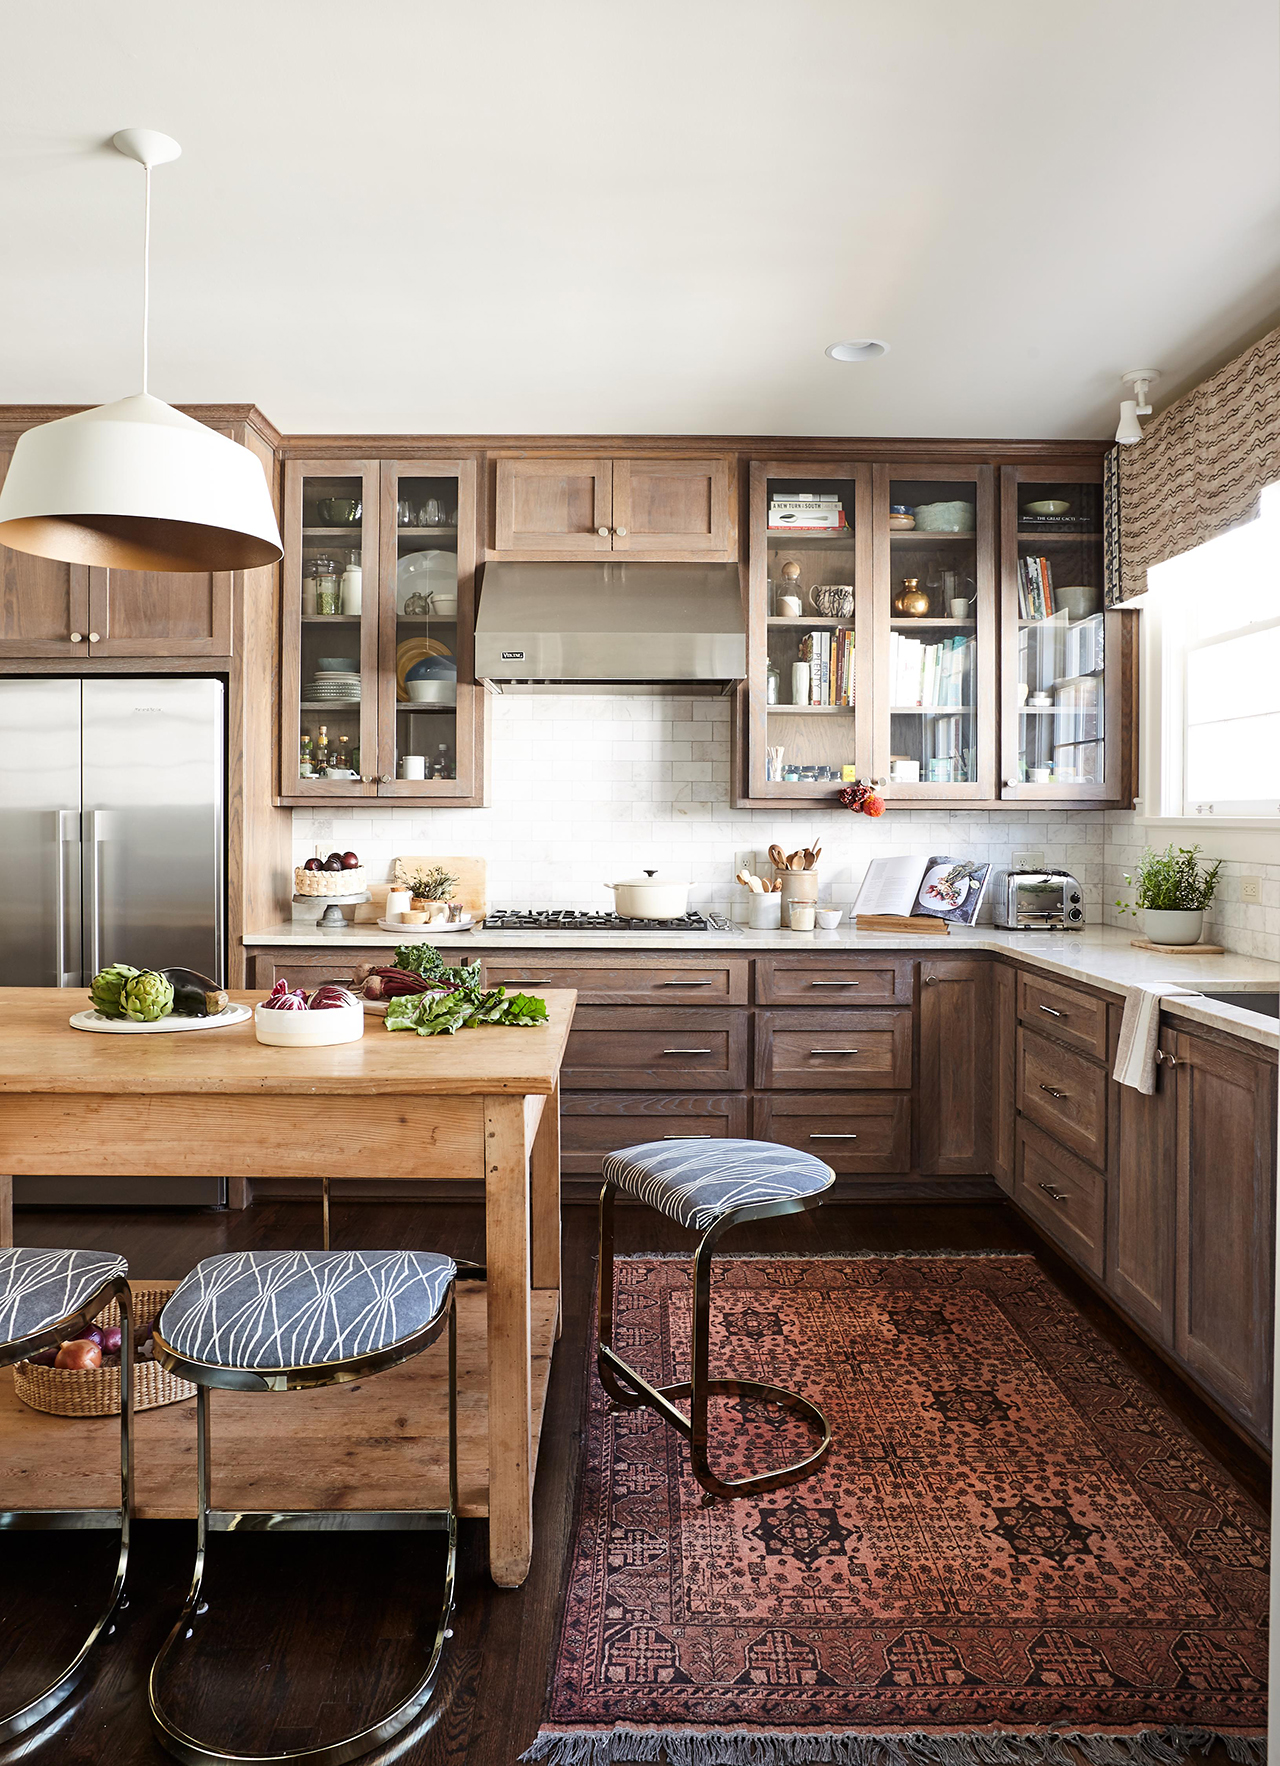 Kitchen Cabinets Red Oak Floors How To Choose Cabinet Materials Better Homes Gardens